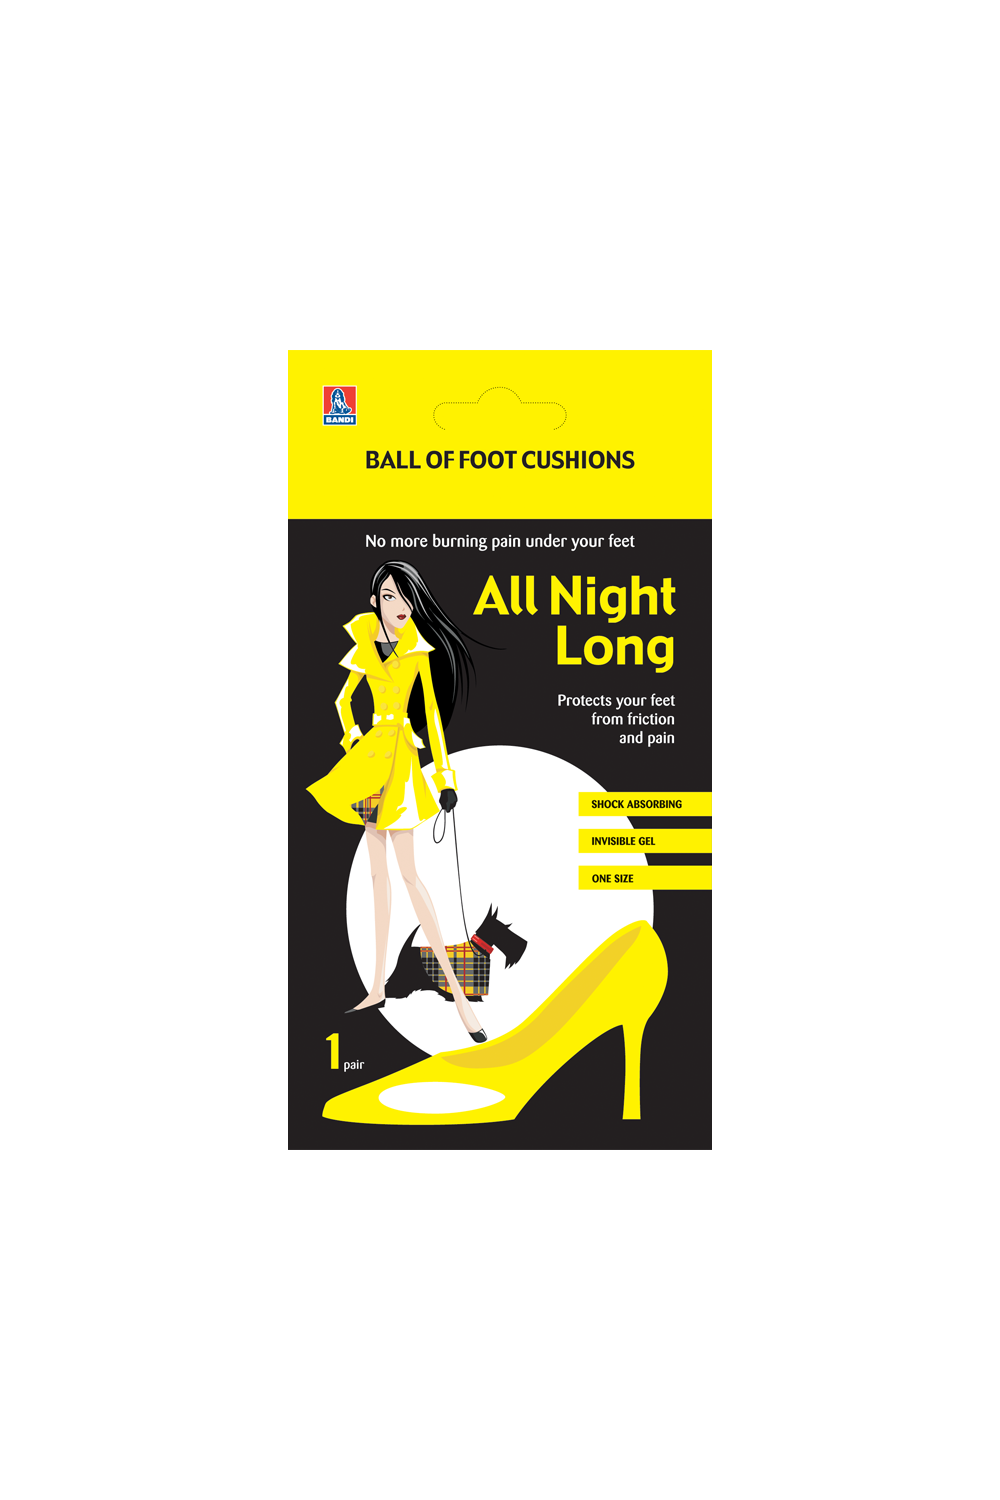 All Night Long - Ball of Foot Cushions